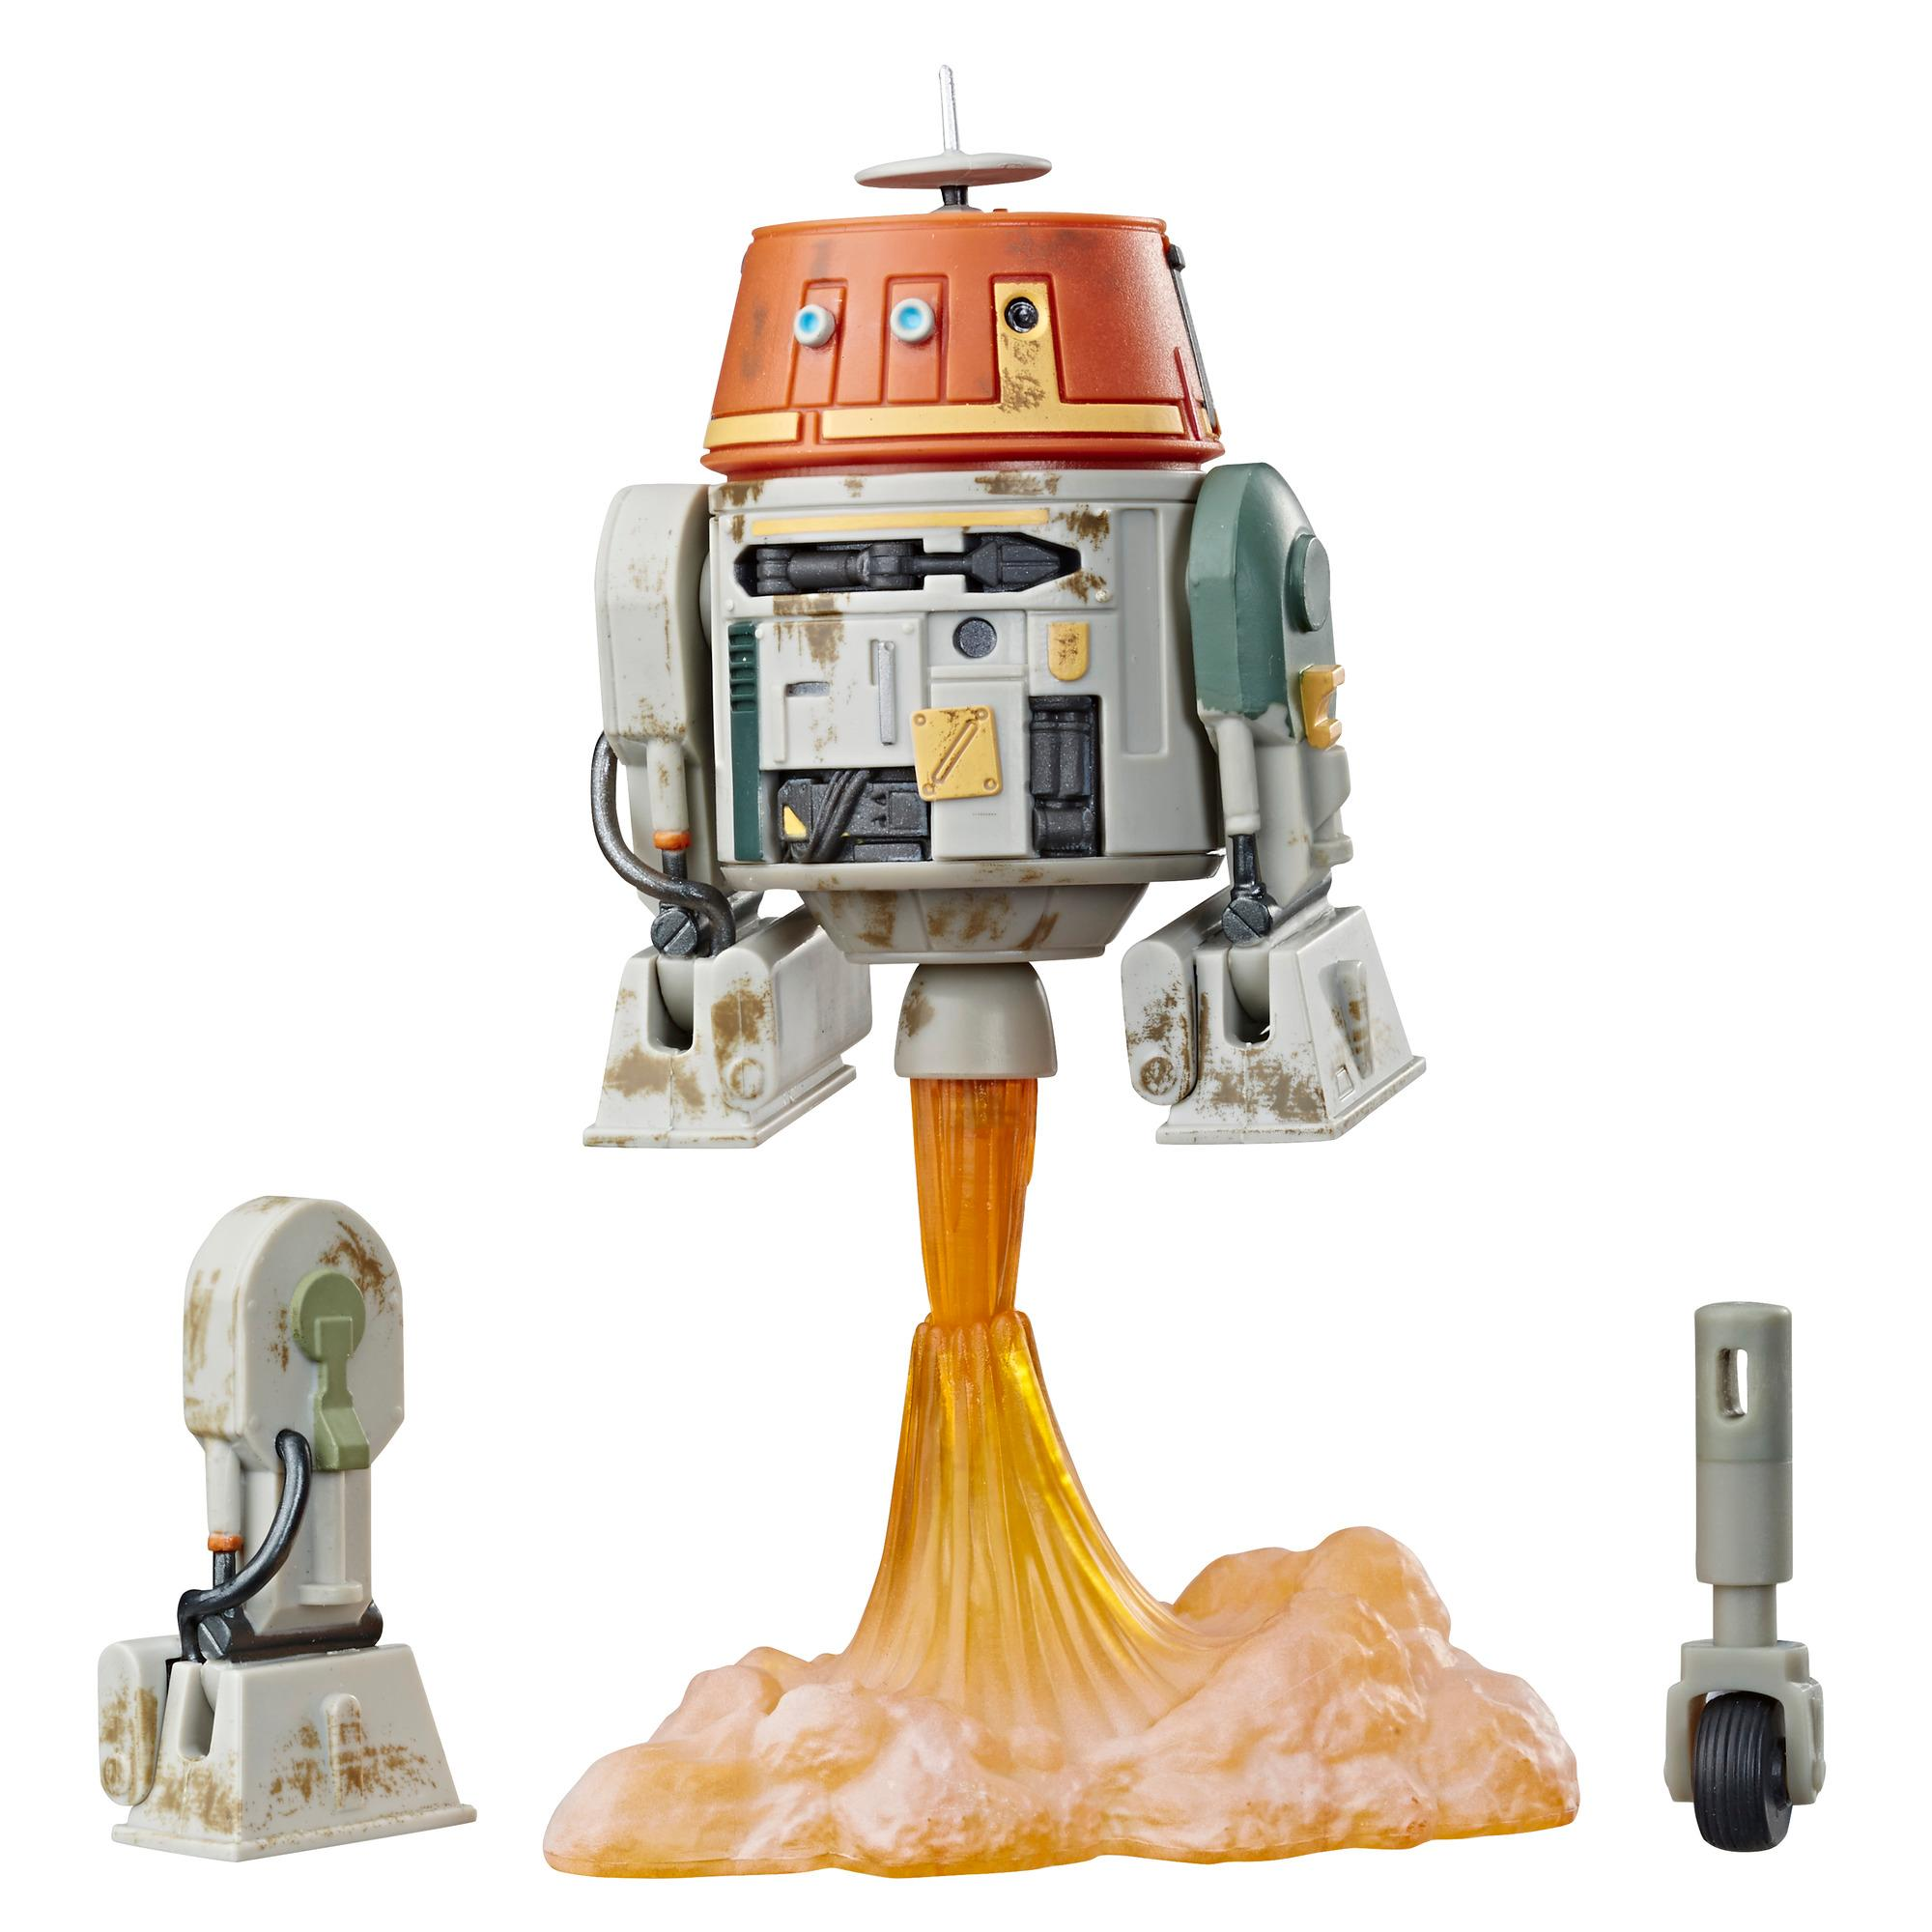 Star Wars The Black Series Star Wars: Rebels 6-Inch-Scale Chopper (C1-10P) Figure